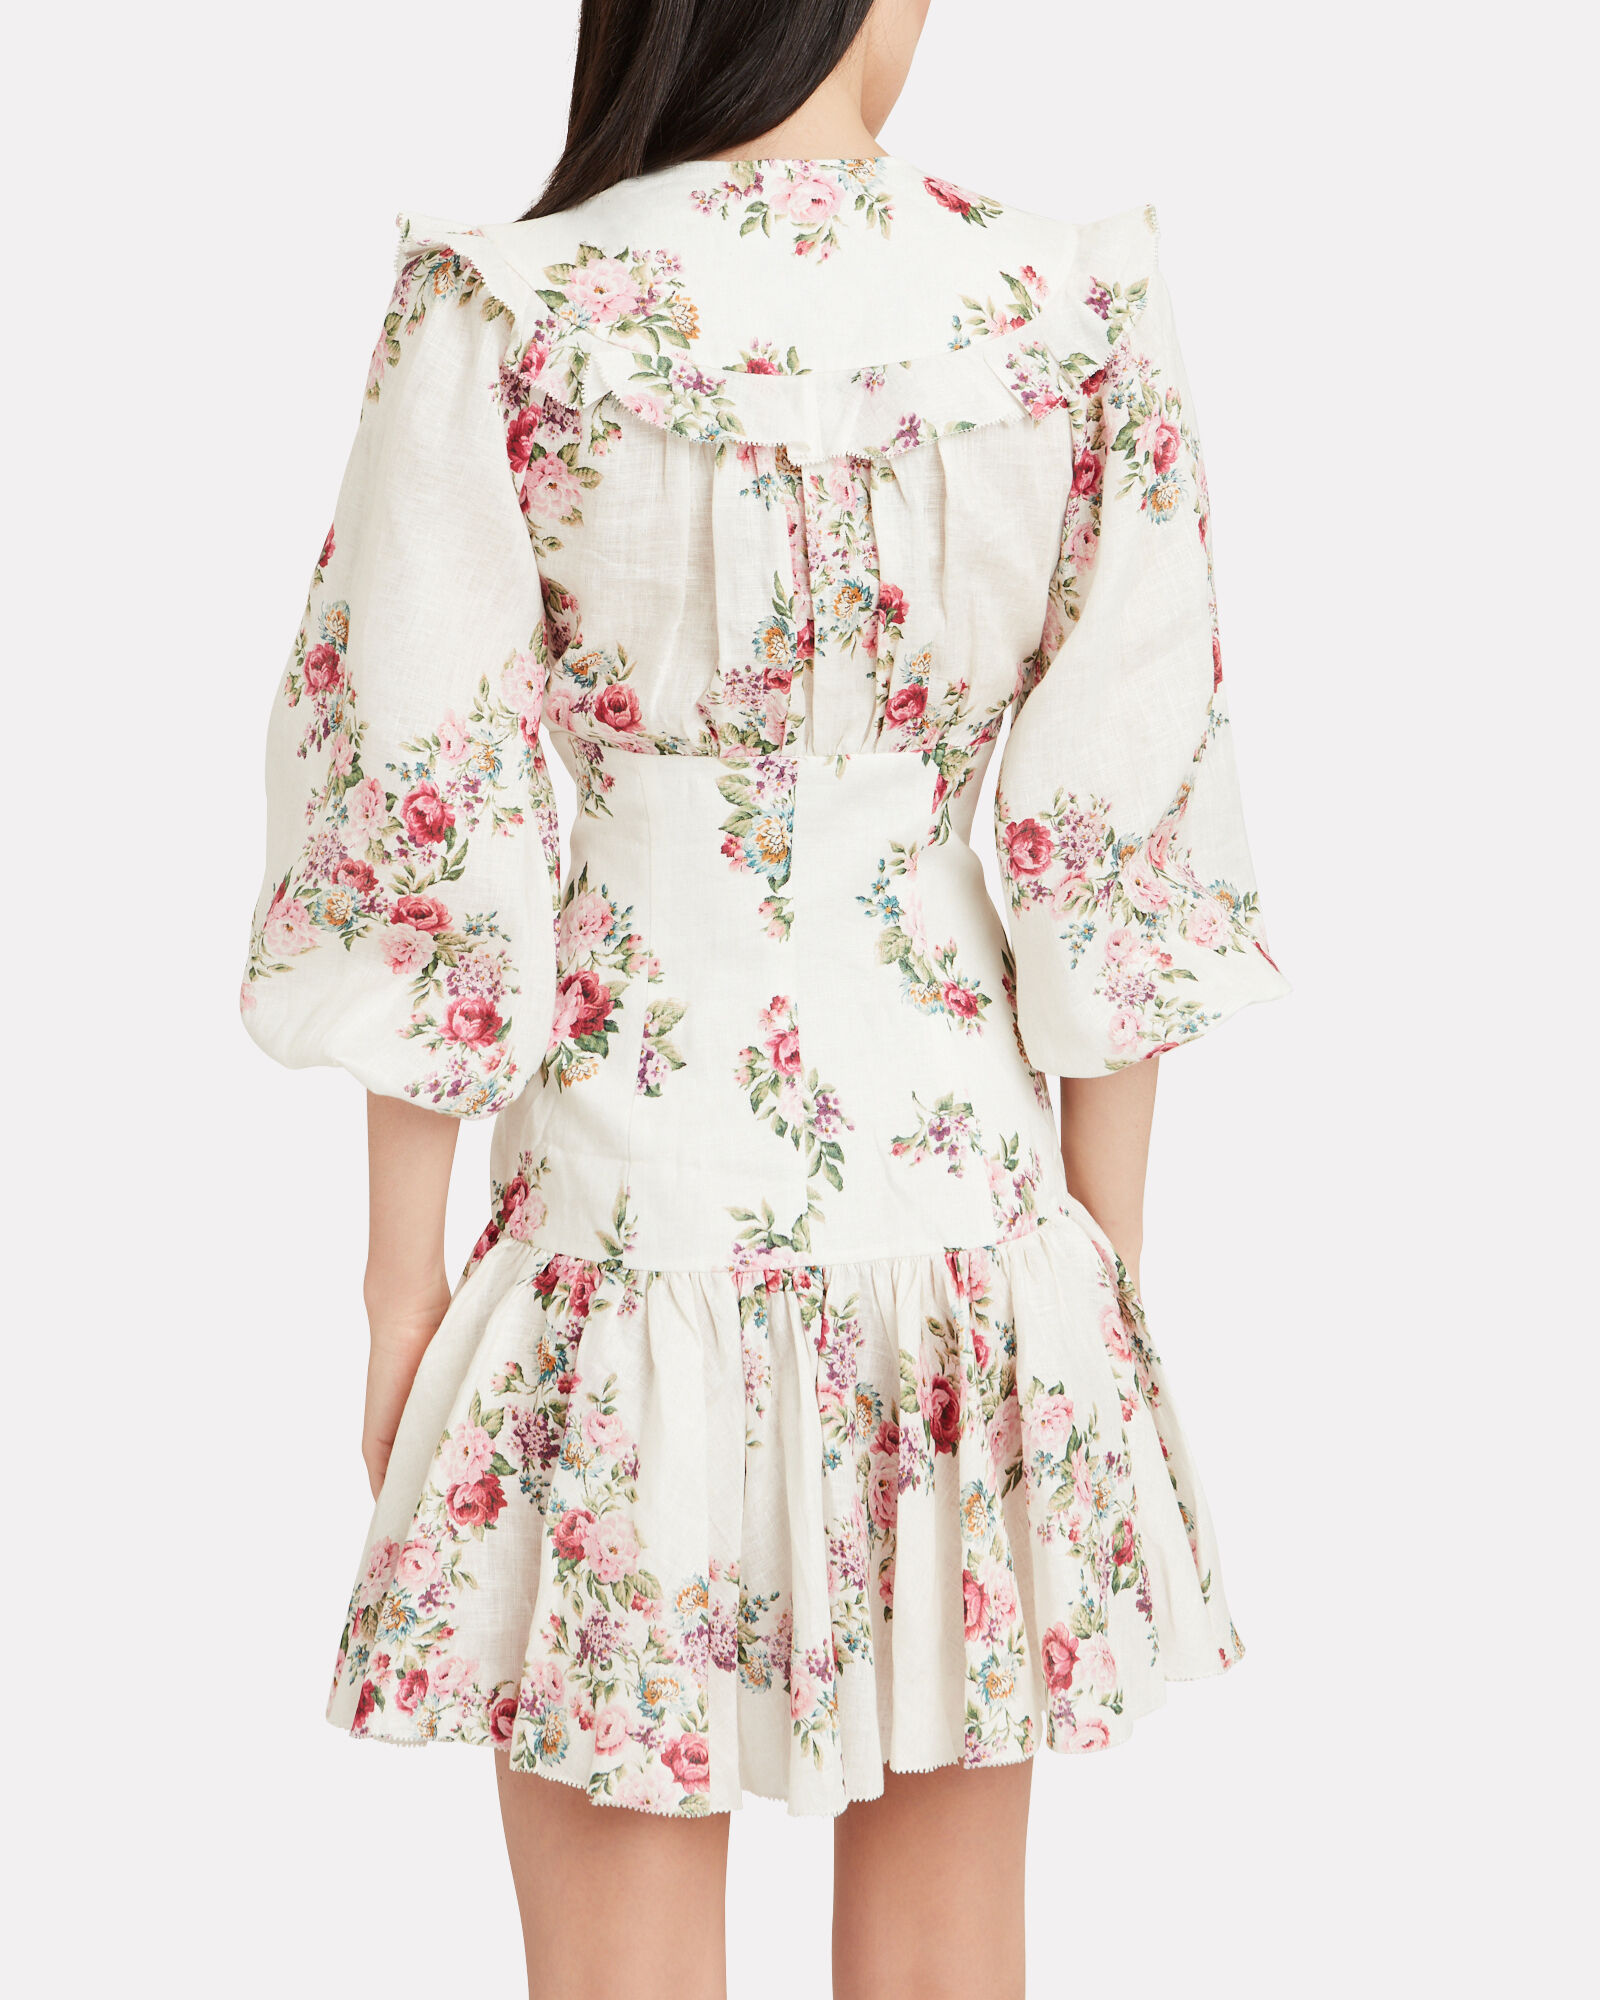 Honour Corset Floral Mini Dress, MULTI, hi-res